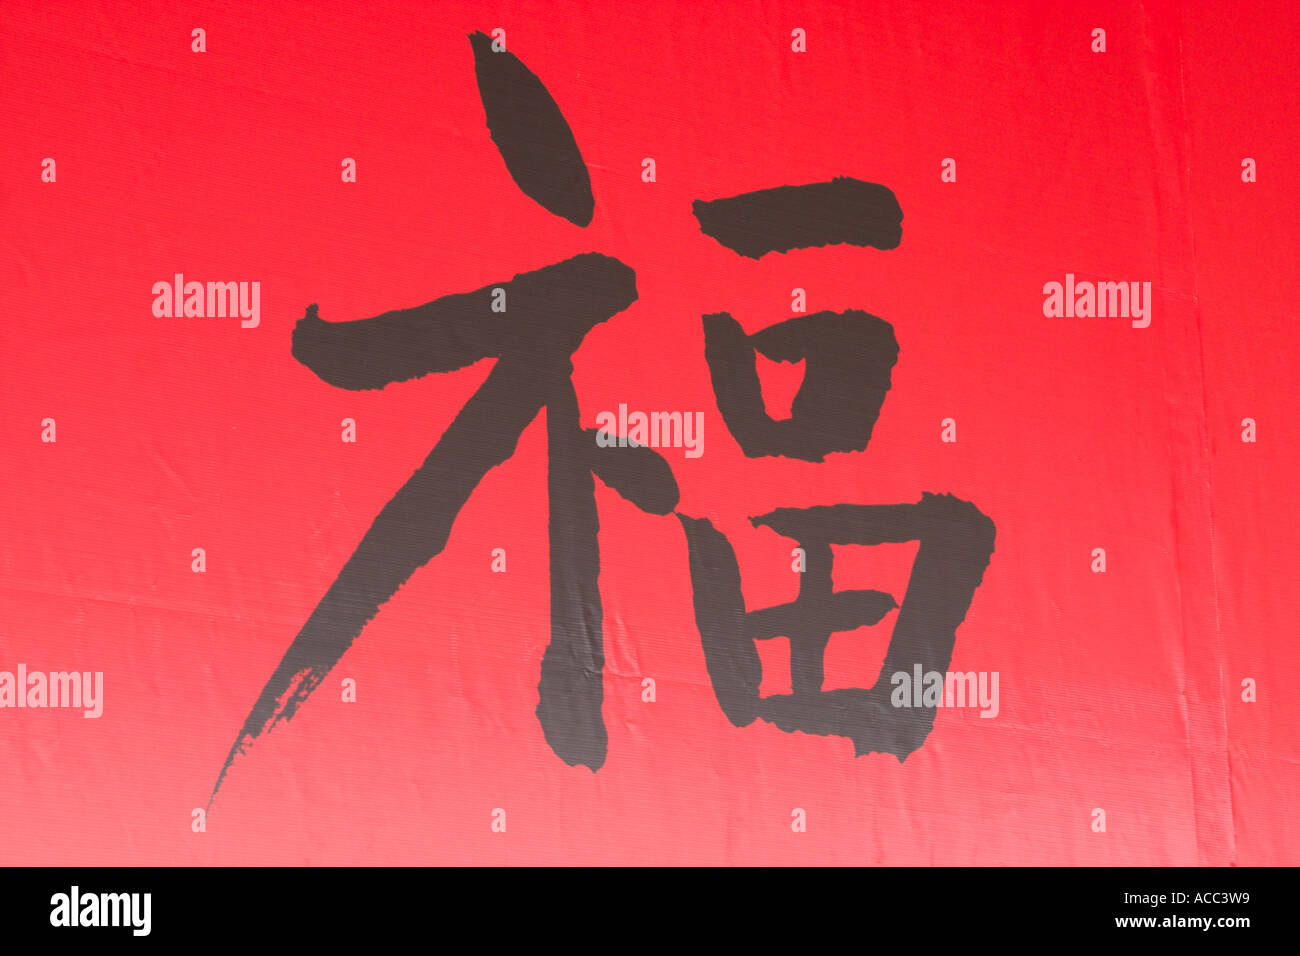 Chinese Character Painted On Red Canvas Fu Meaning Good Luck